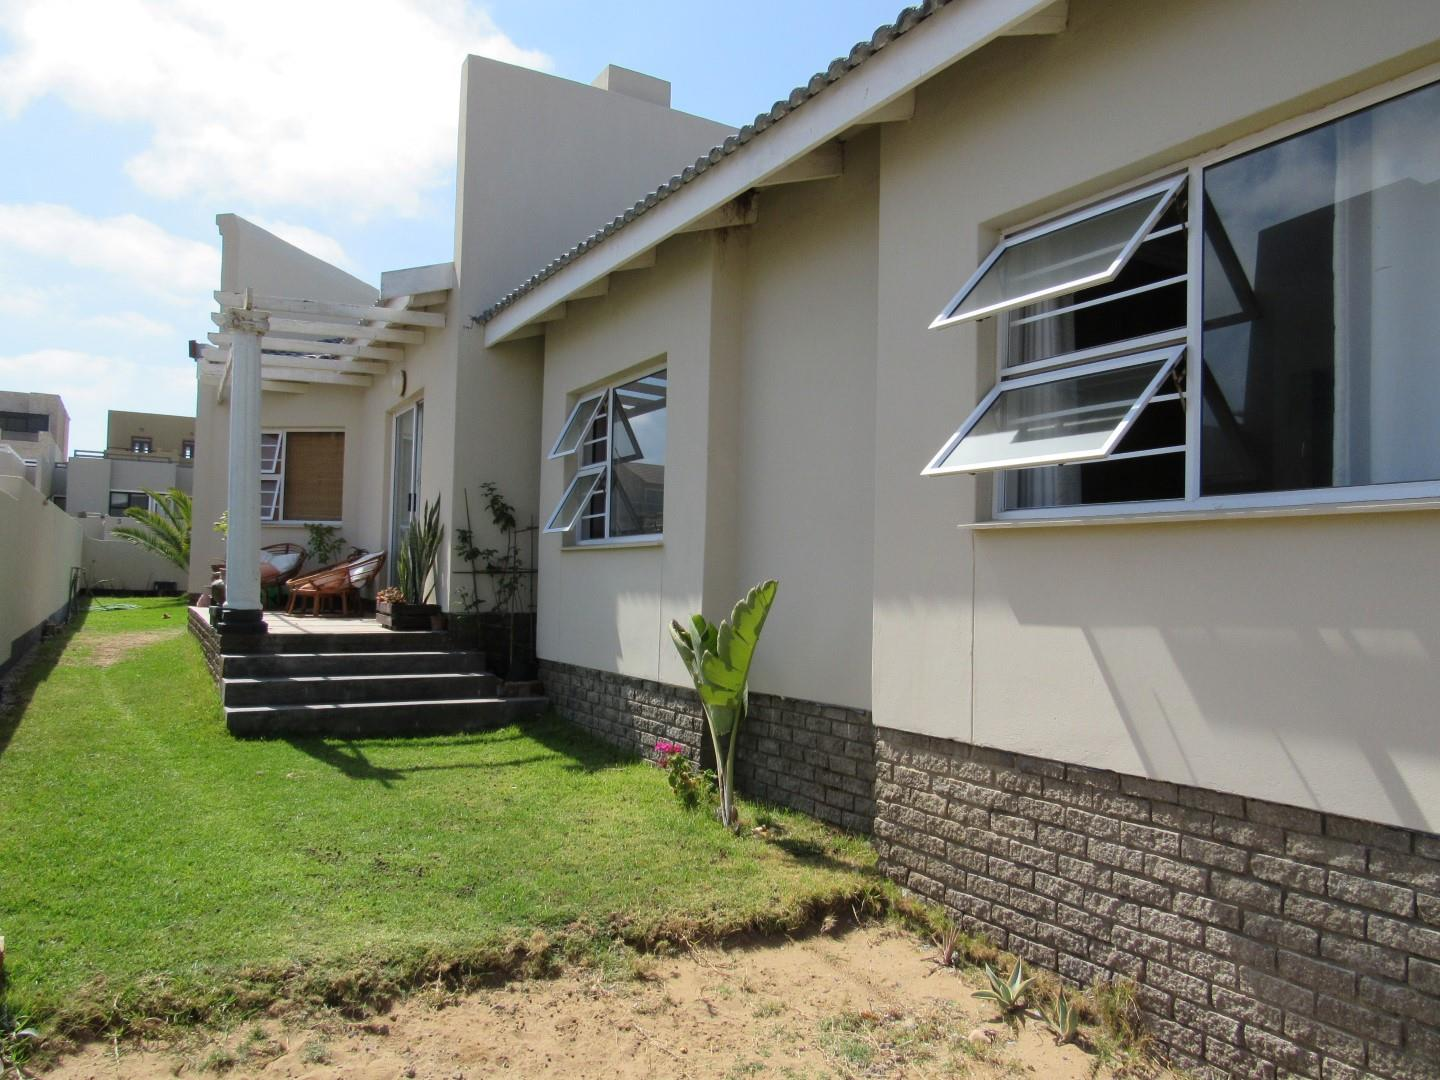 3 Bedroom  House for Sale in Swakopmund - Erongo